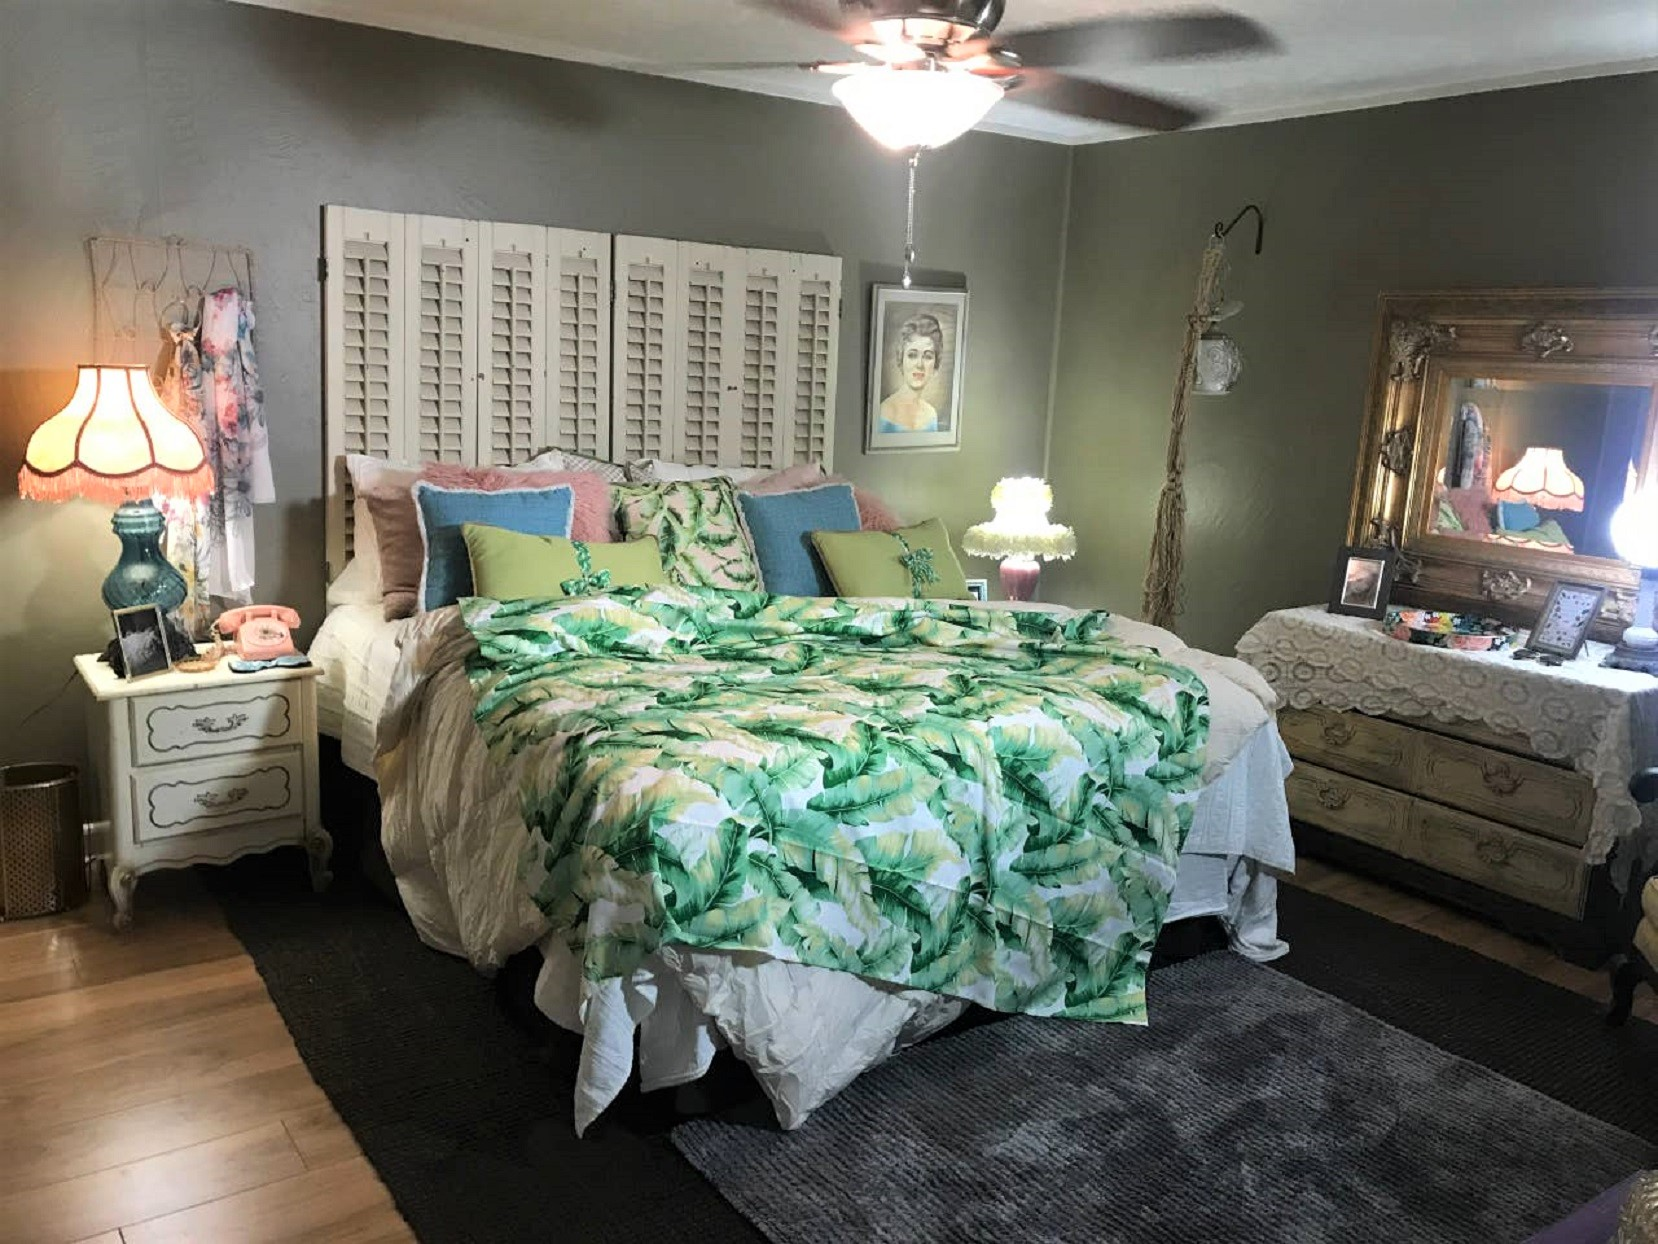 The Golden Girls Themed Airbnb 1 Bedroom